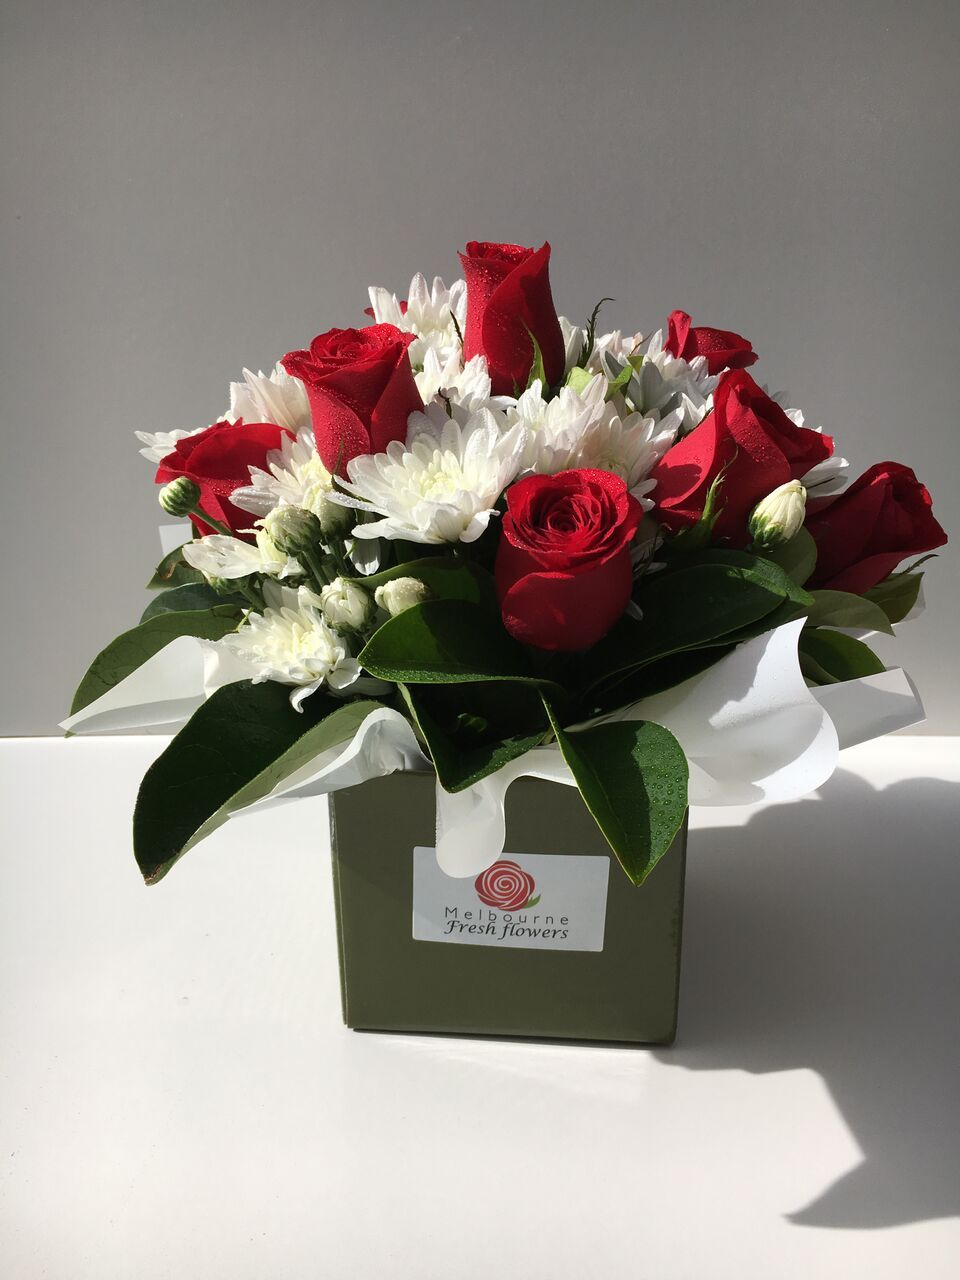 Make your dear ones feel loved with a bunch of red roses and white flowers delivery in melbourne send flowers to melbourne cheap flowers delivery melbourne izmirmasajfo Gallery